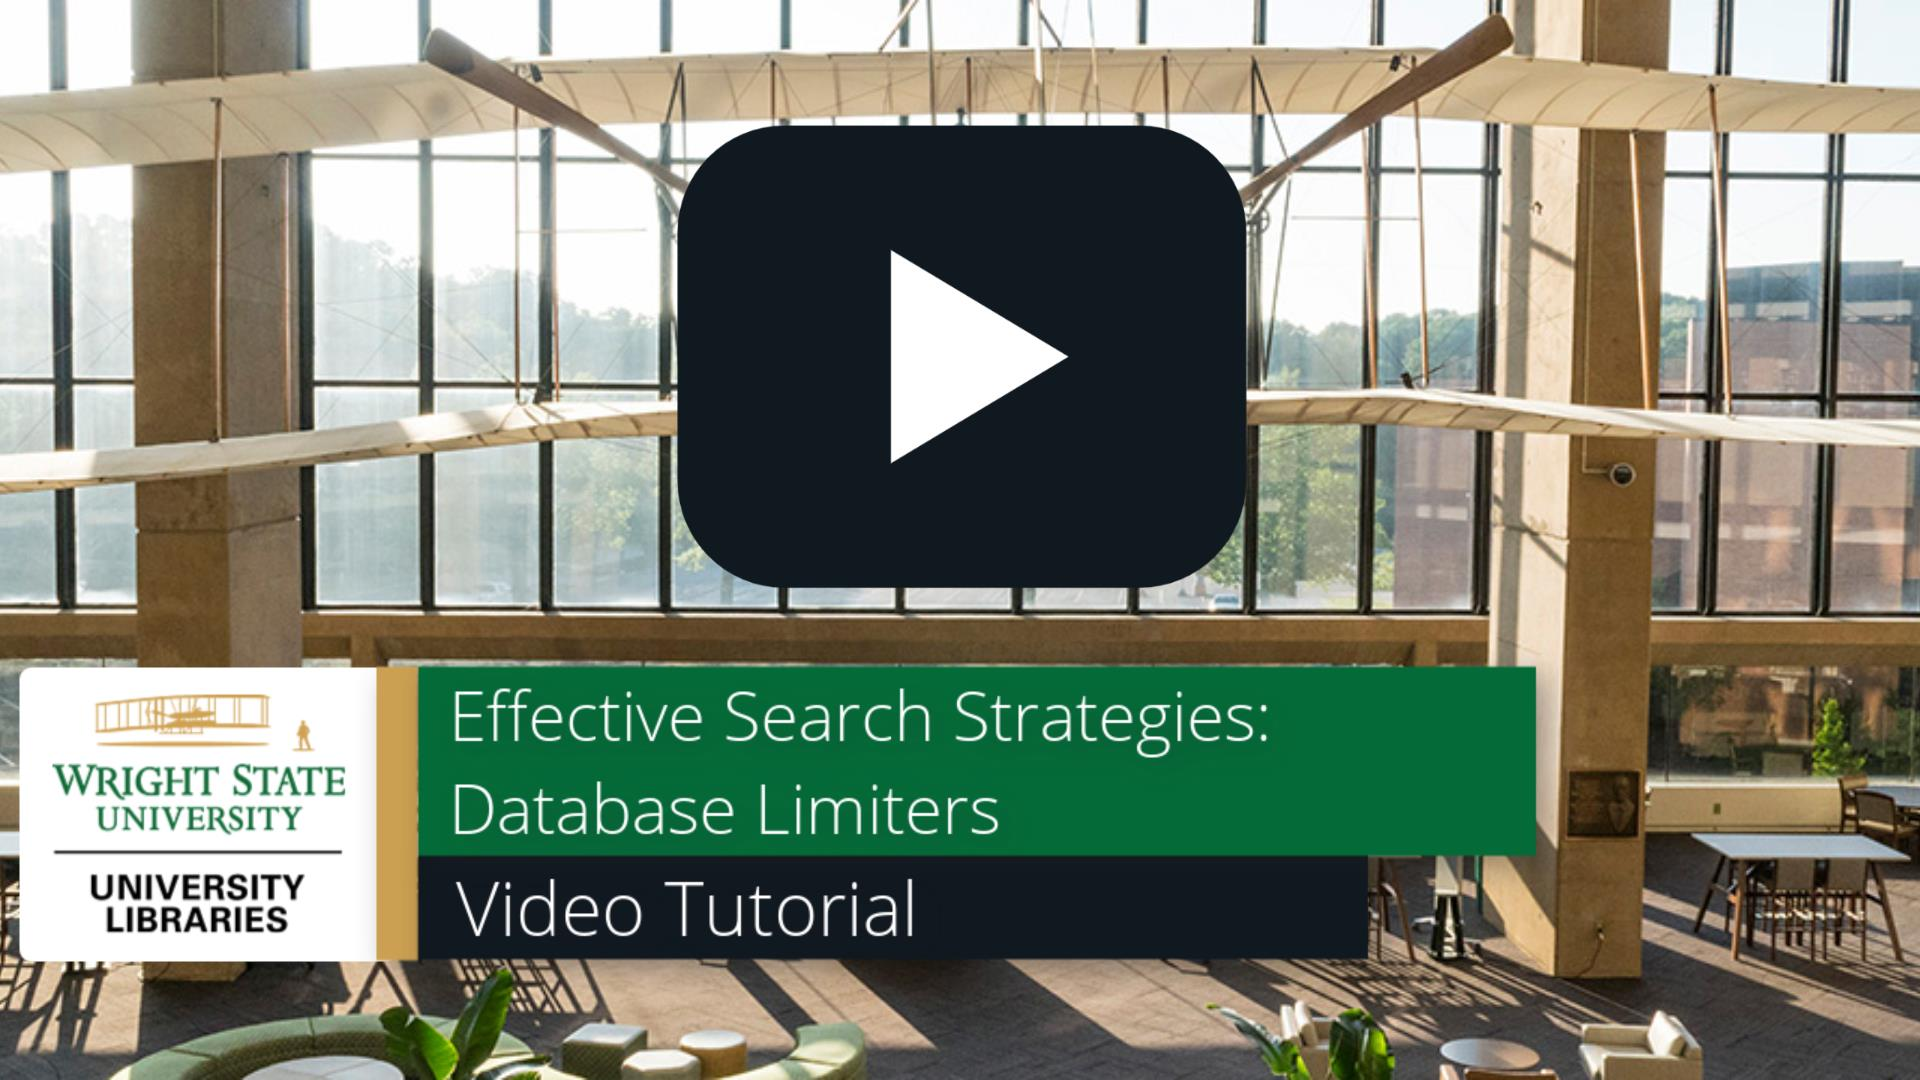 Effective Search Strategies - Database Limiters: Video Tutorial